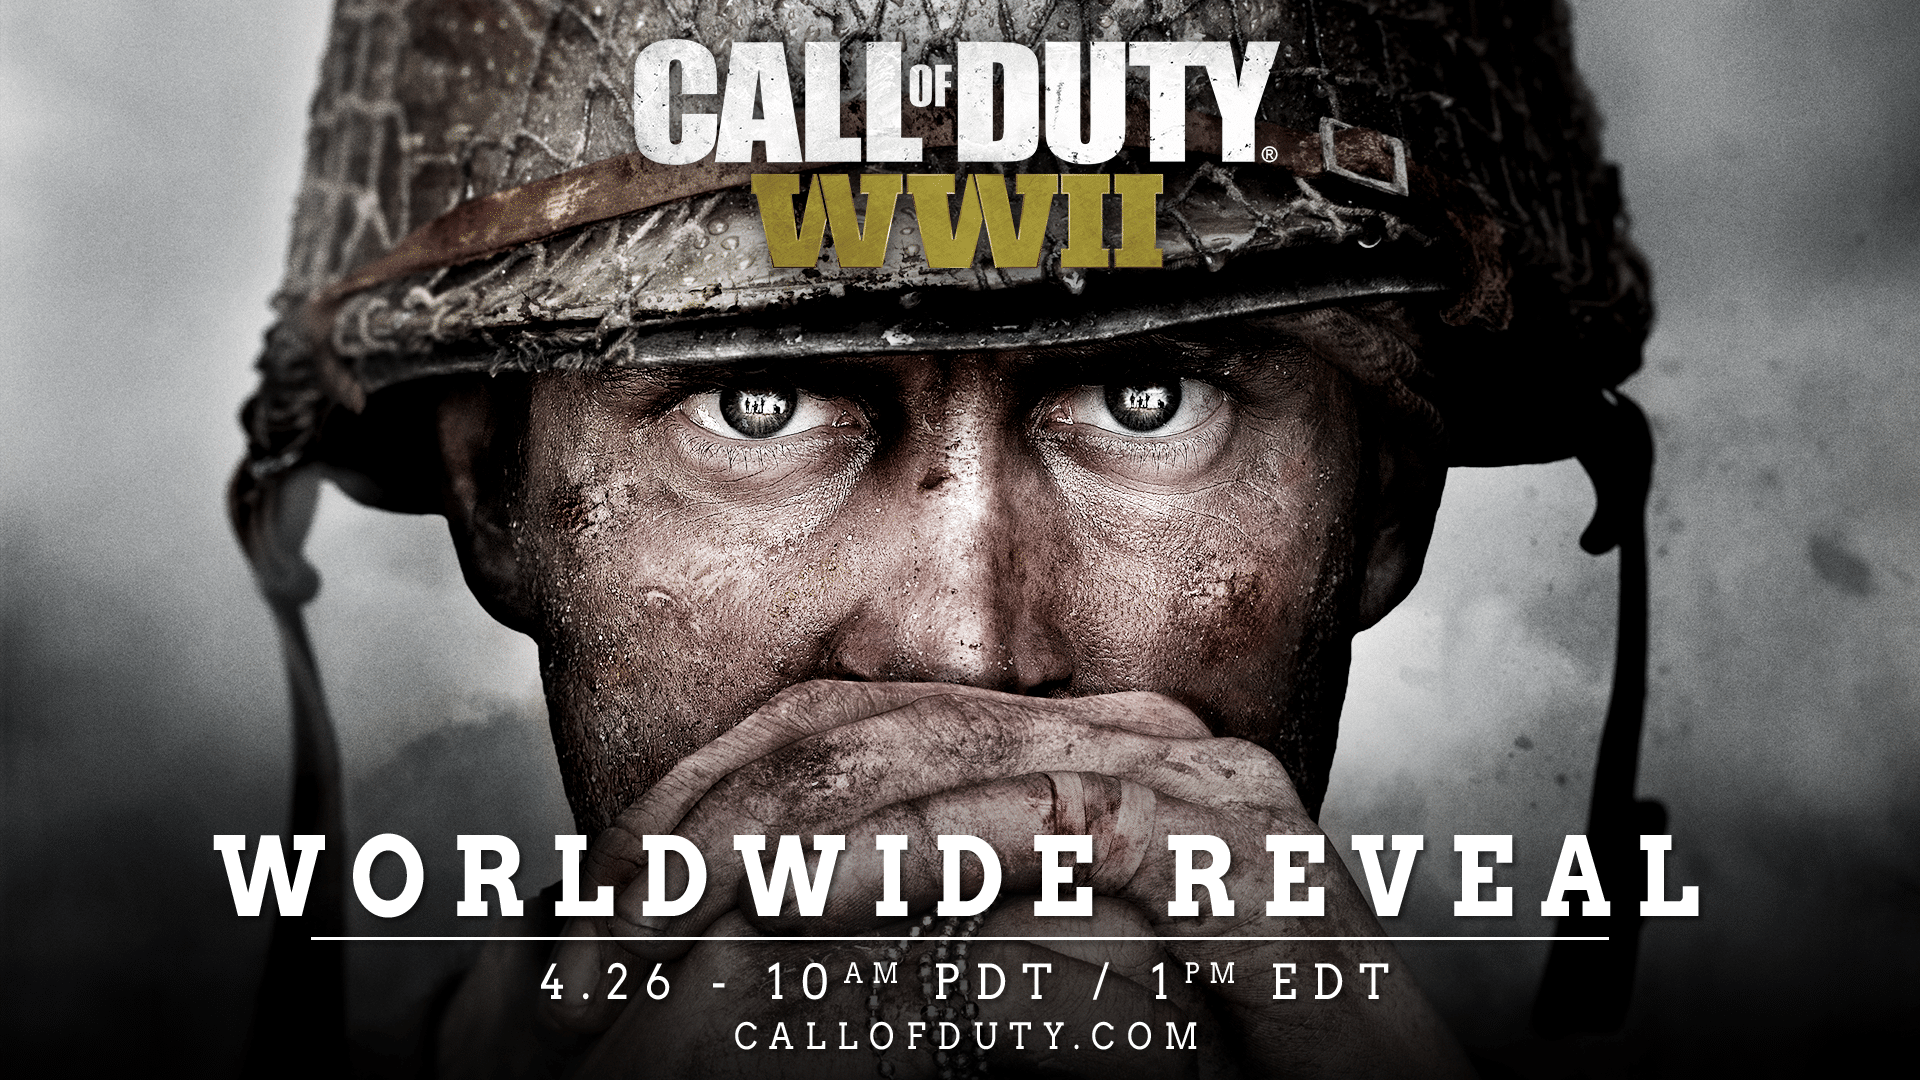 Activision confirms the next Call of Duty will be set in WWII